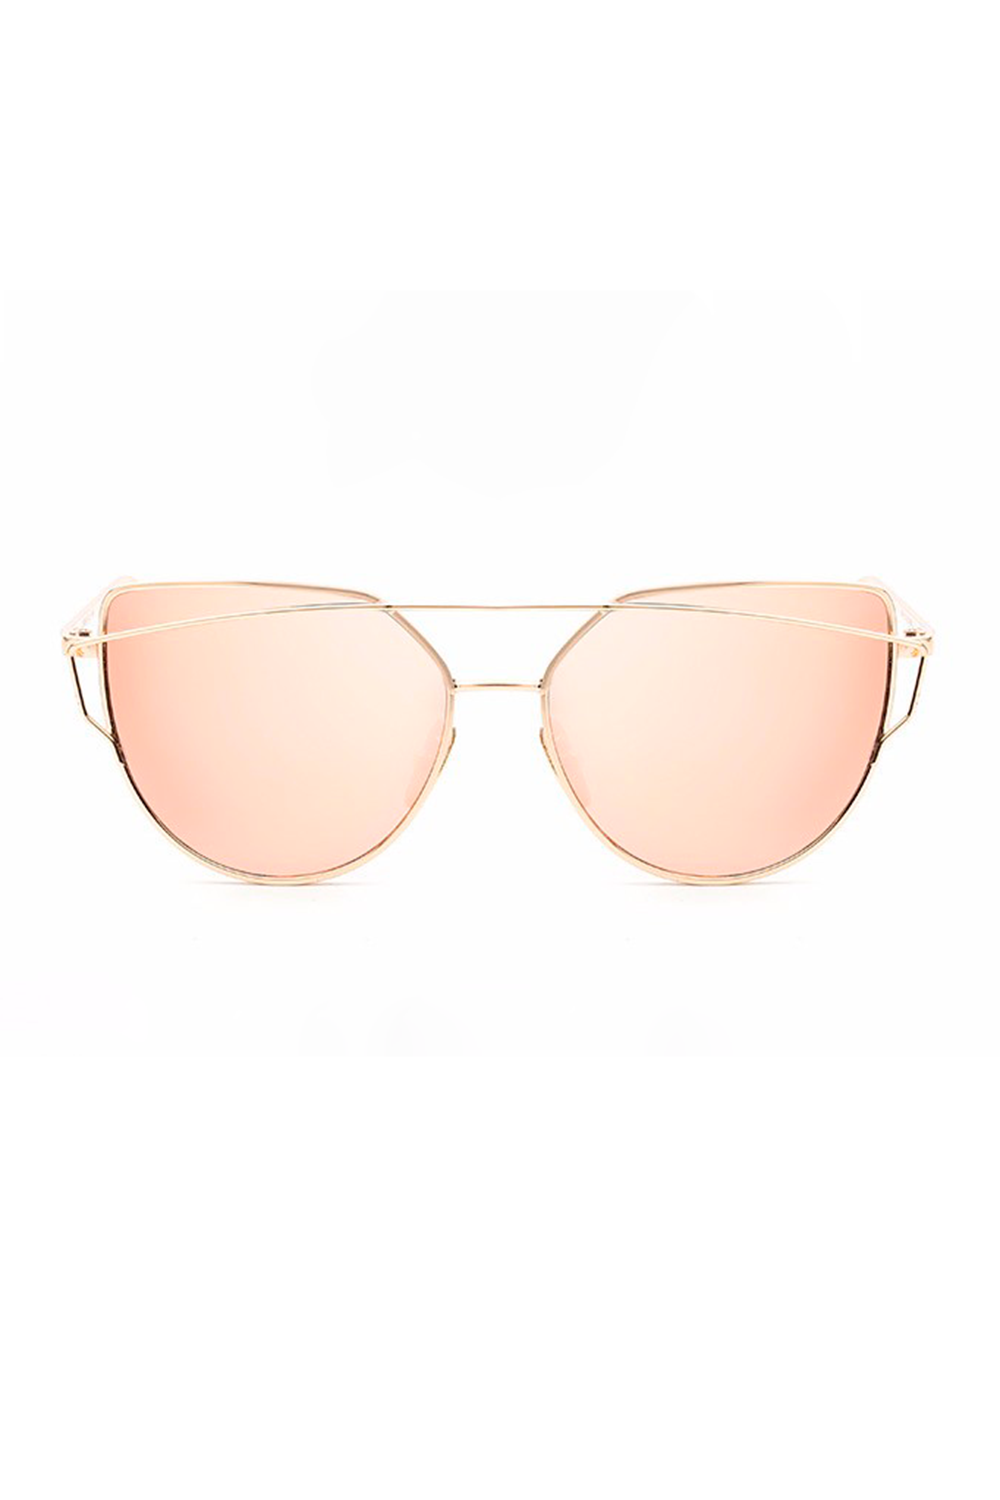 Miracle Sunglasses - Rosé